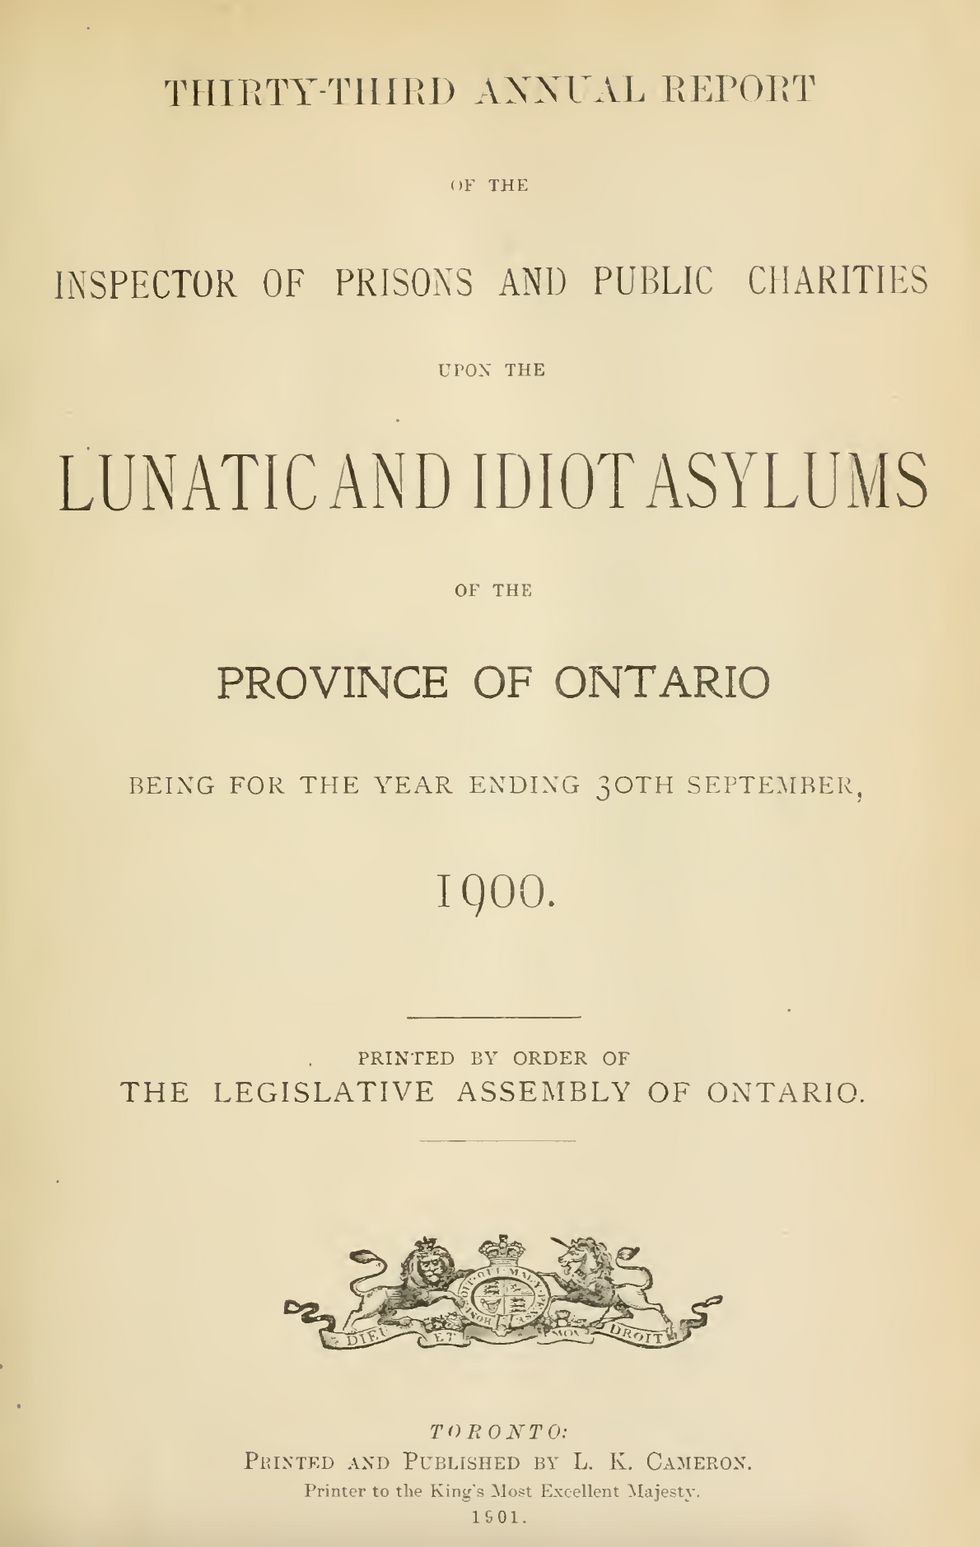 Cover page from the Annual Report of the Inspector of Prisons and Public Charities in Ontario for for 1900. The annual report typically included a summary of the institutions admissions and discharges, changes to the property or buildings, notes about treatment philosophies, and announcements of events that occurred during the year. contained statistics on the hospital. The full annual report can be read via Archive.org